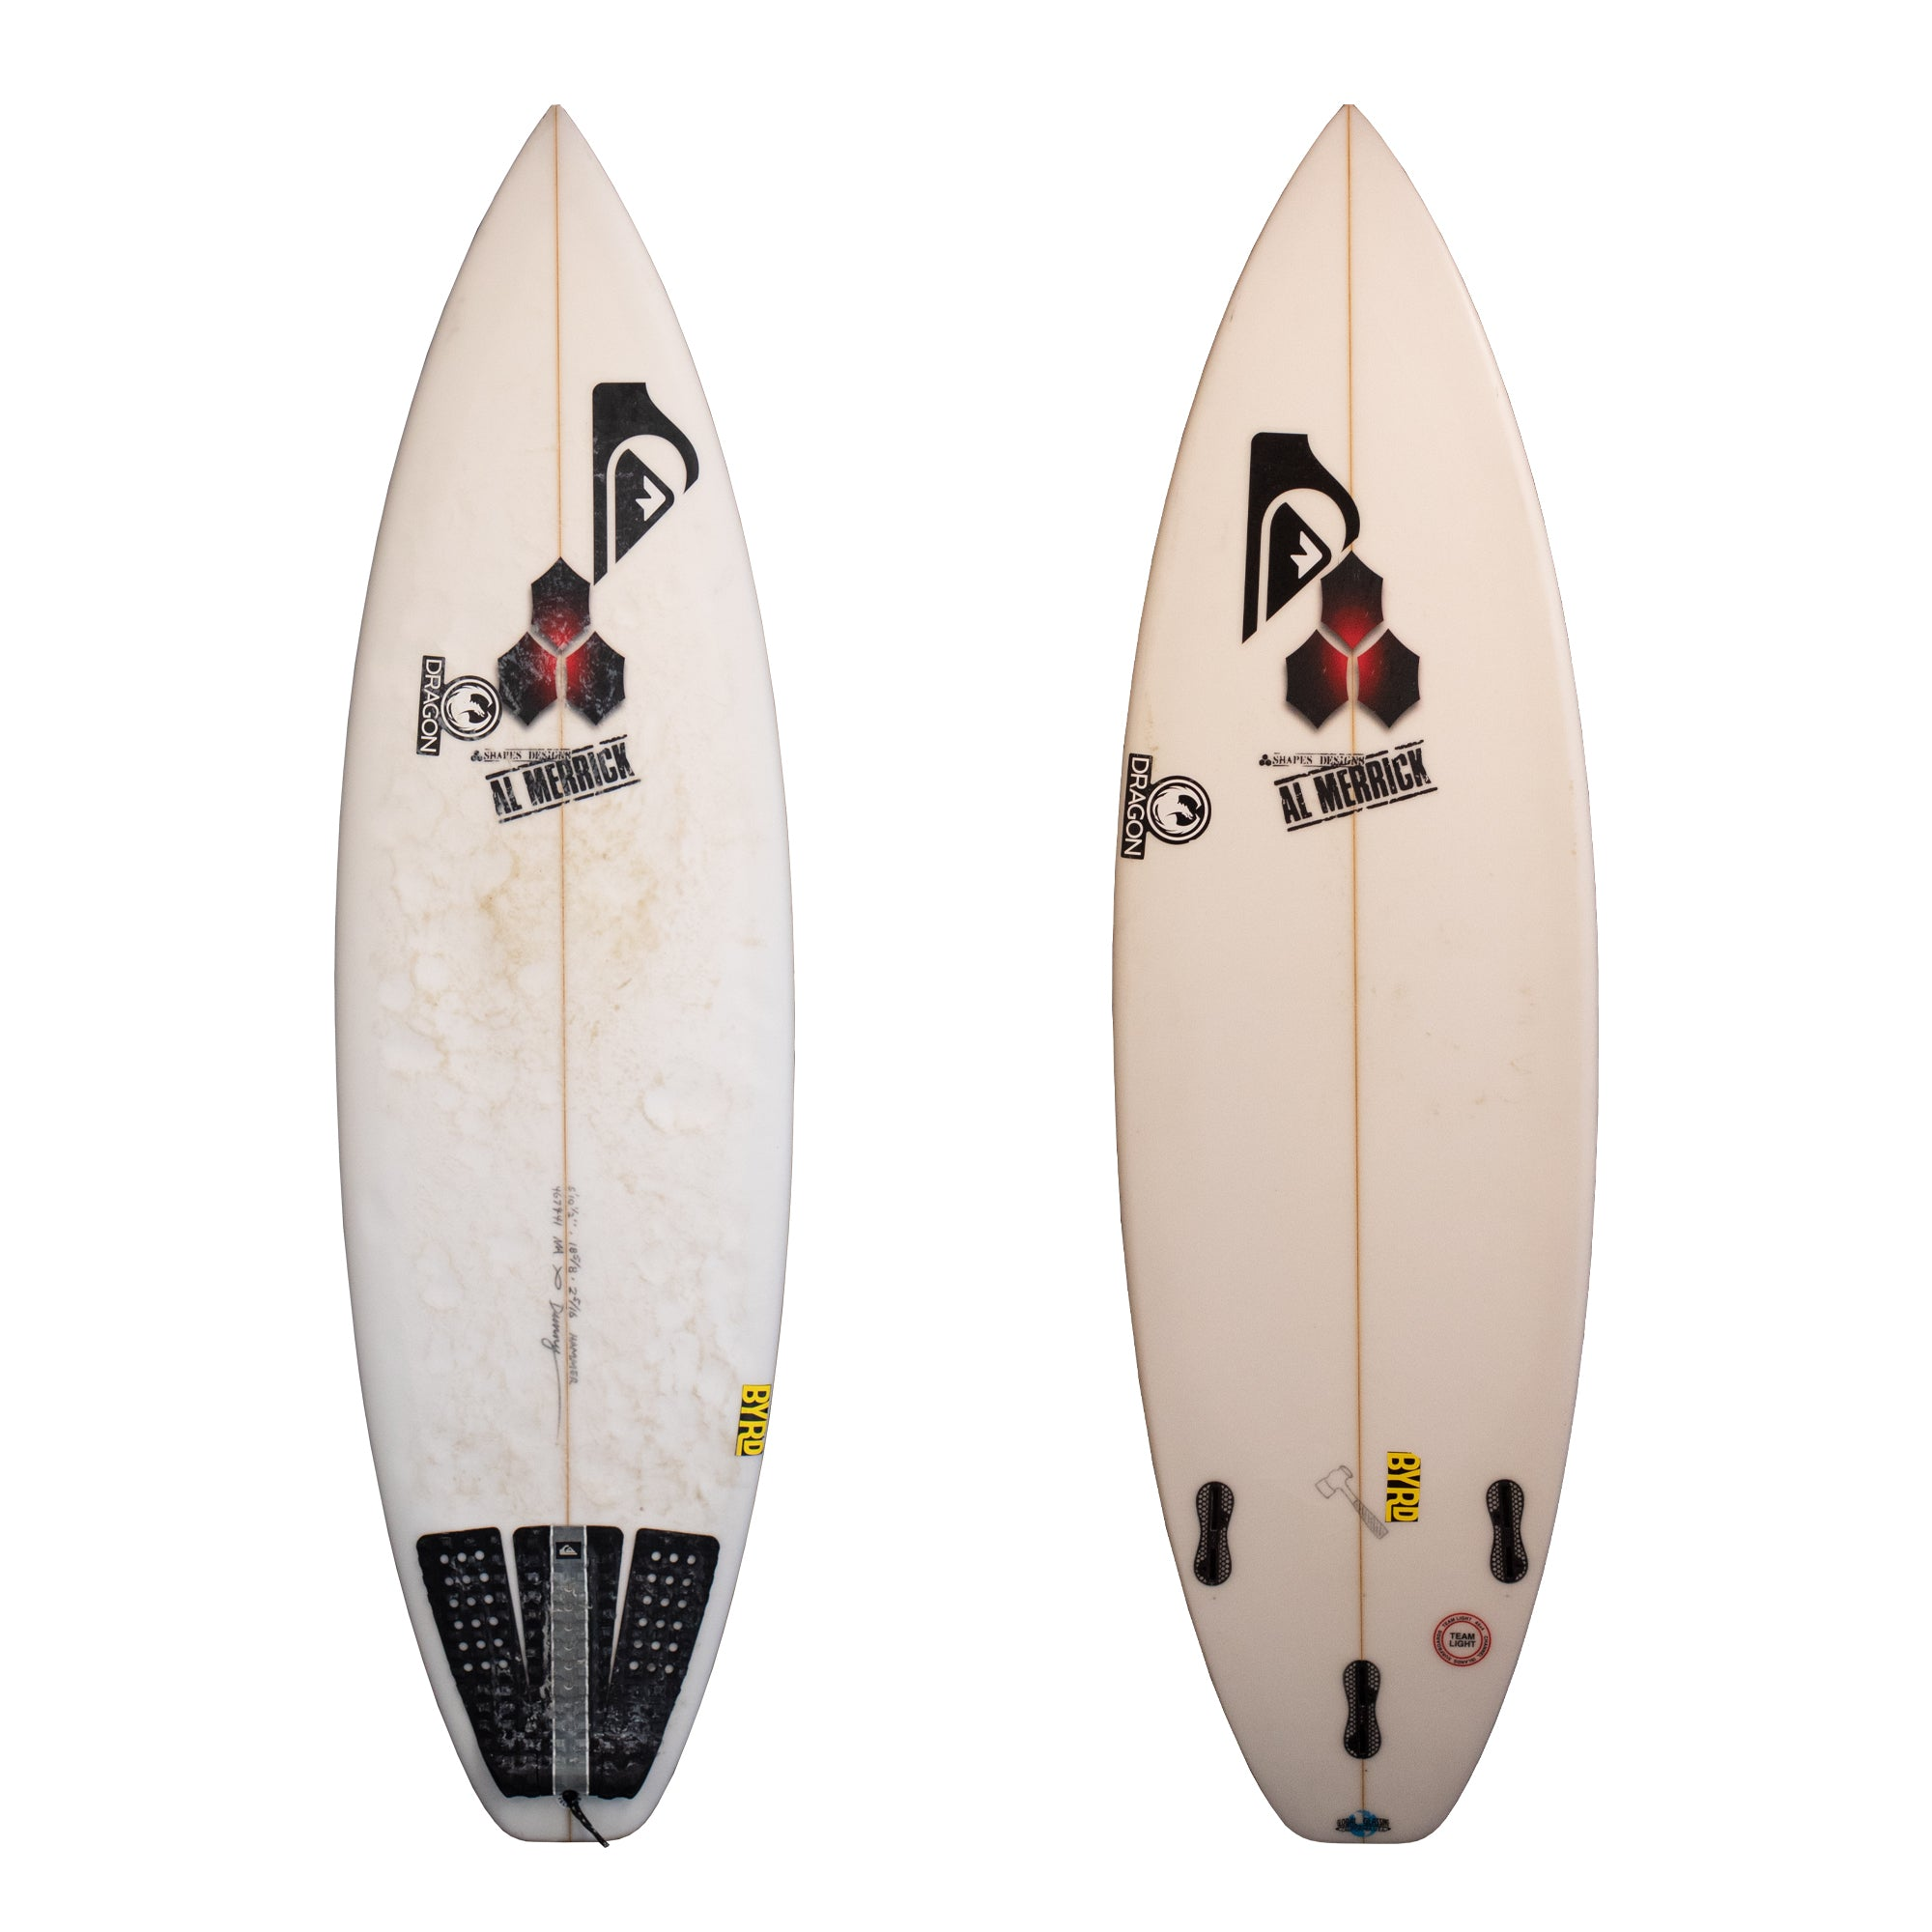 Channel Islands Hammer 5'10 Used Surfboard